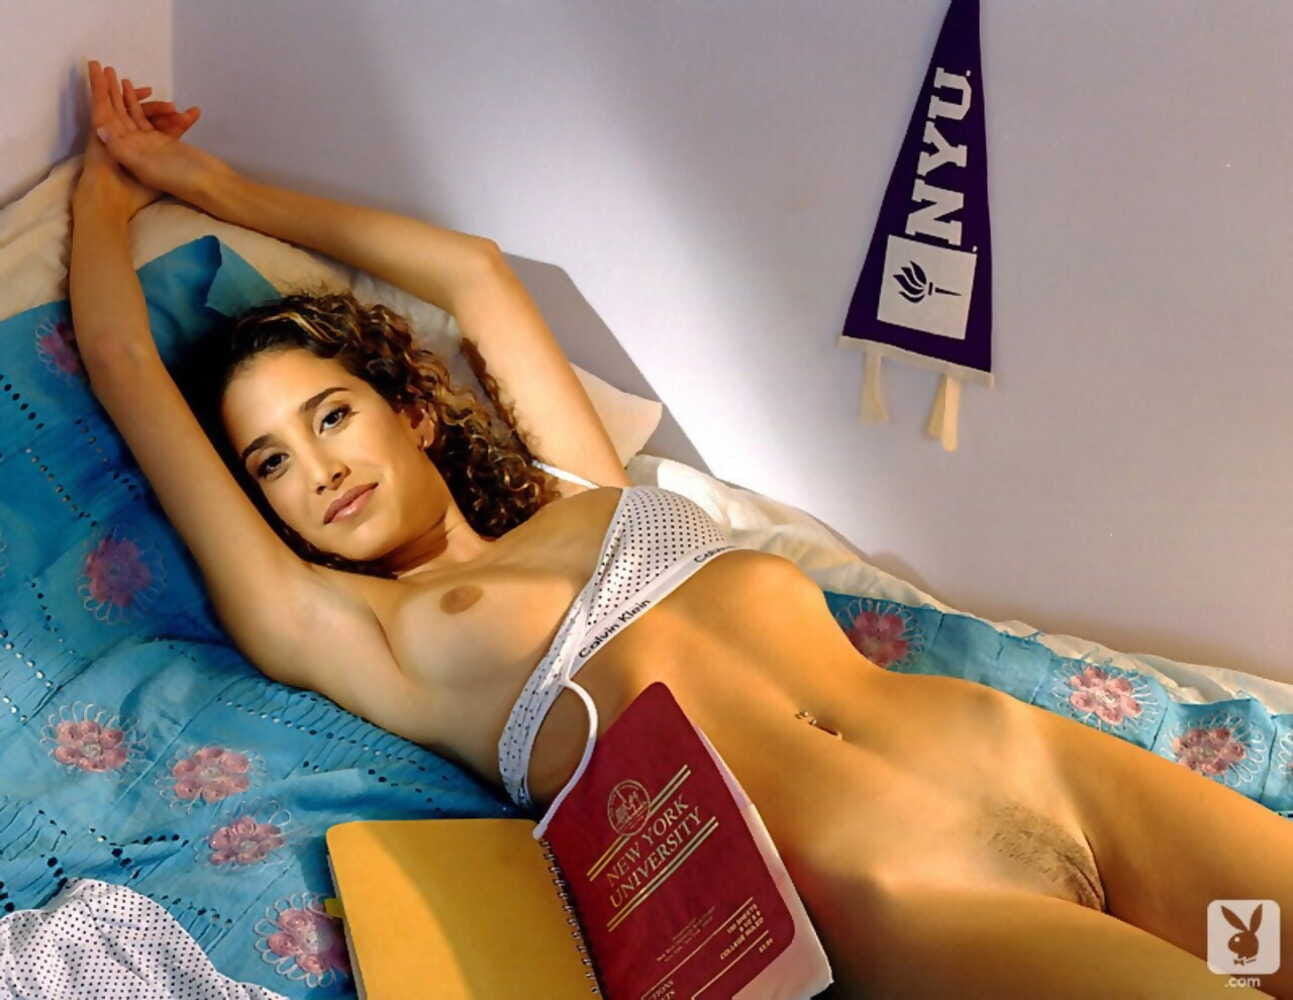 Moist & lusty college girls display their big tits & while studying for exams